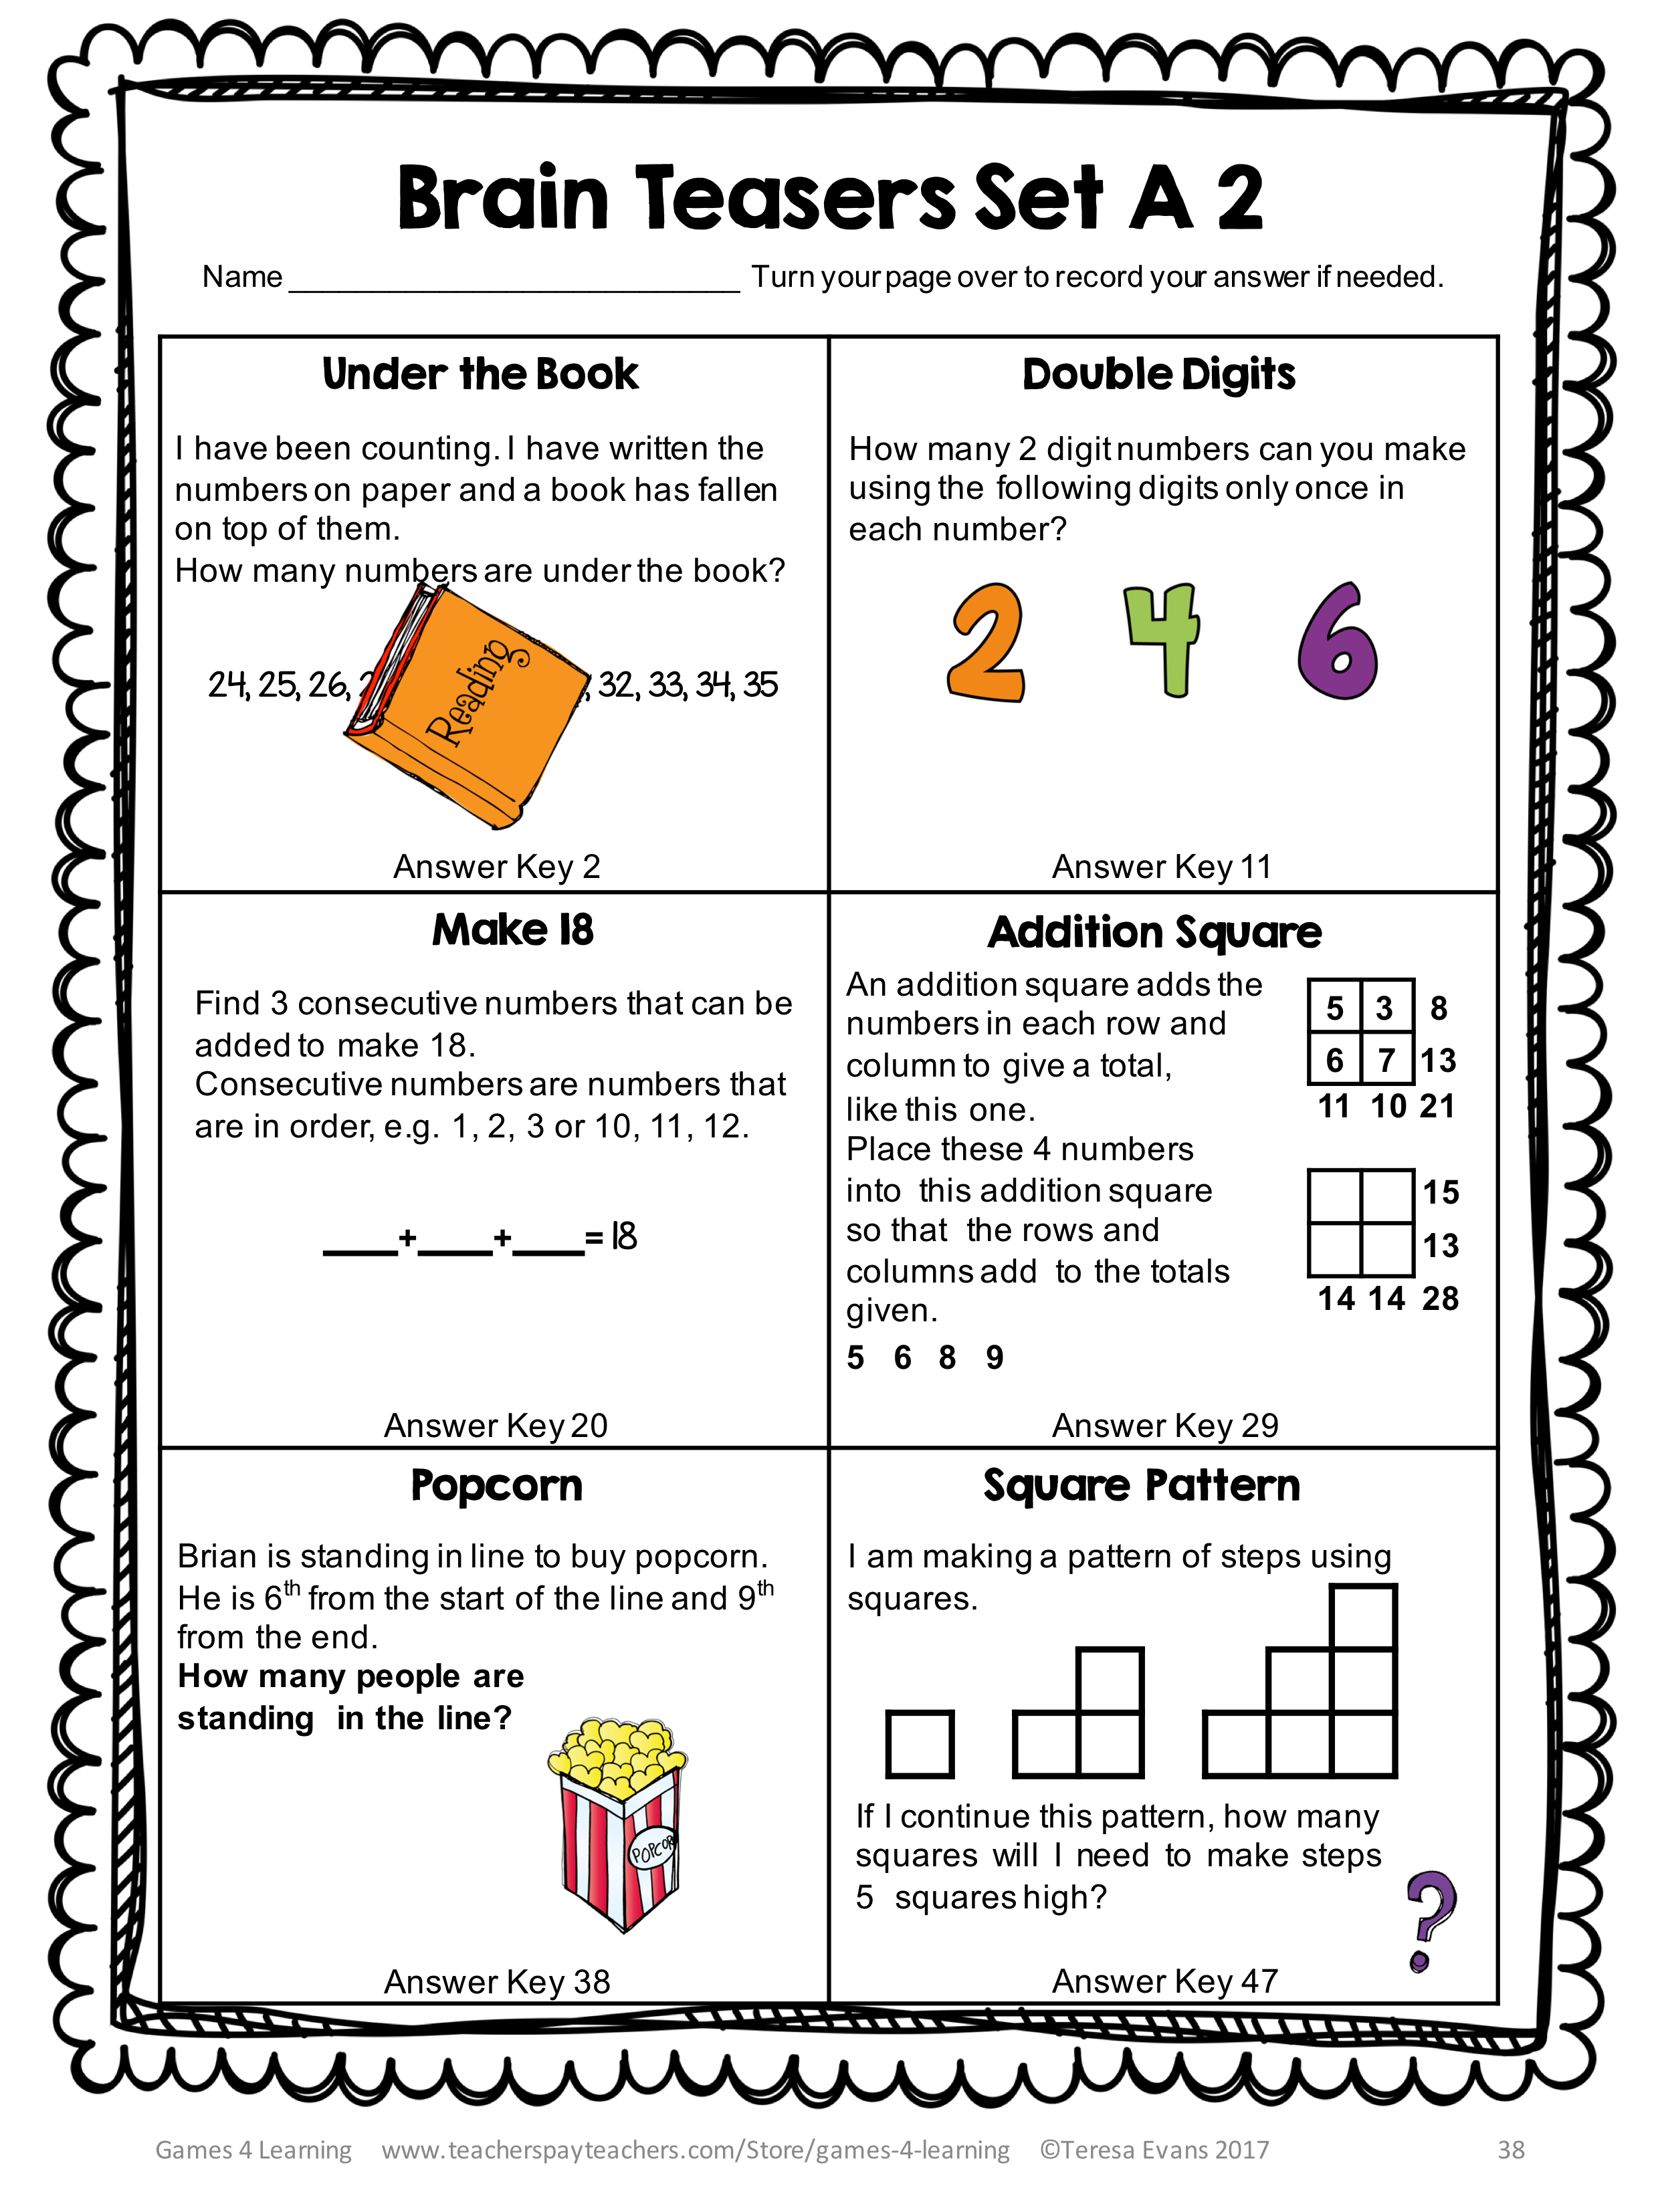 small resolution of Printable Math Problems and Math Brain Teasers Cards from Games 4 Learning  contains 54 printable cards in large size